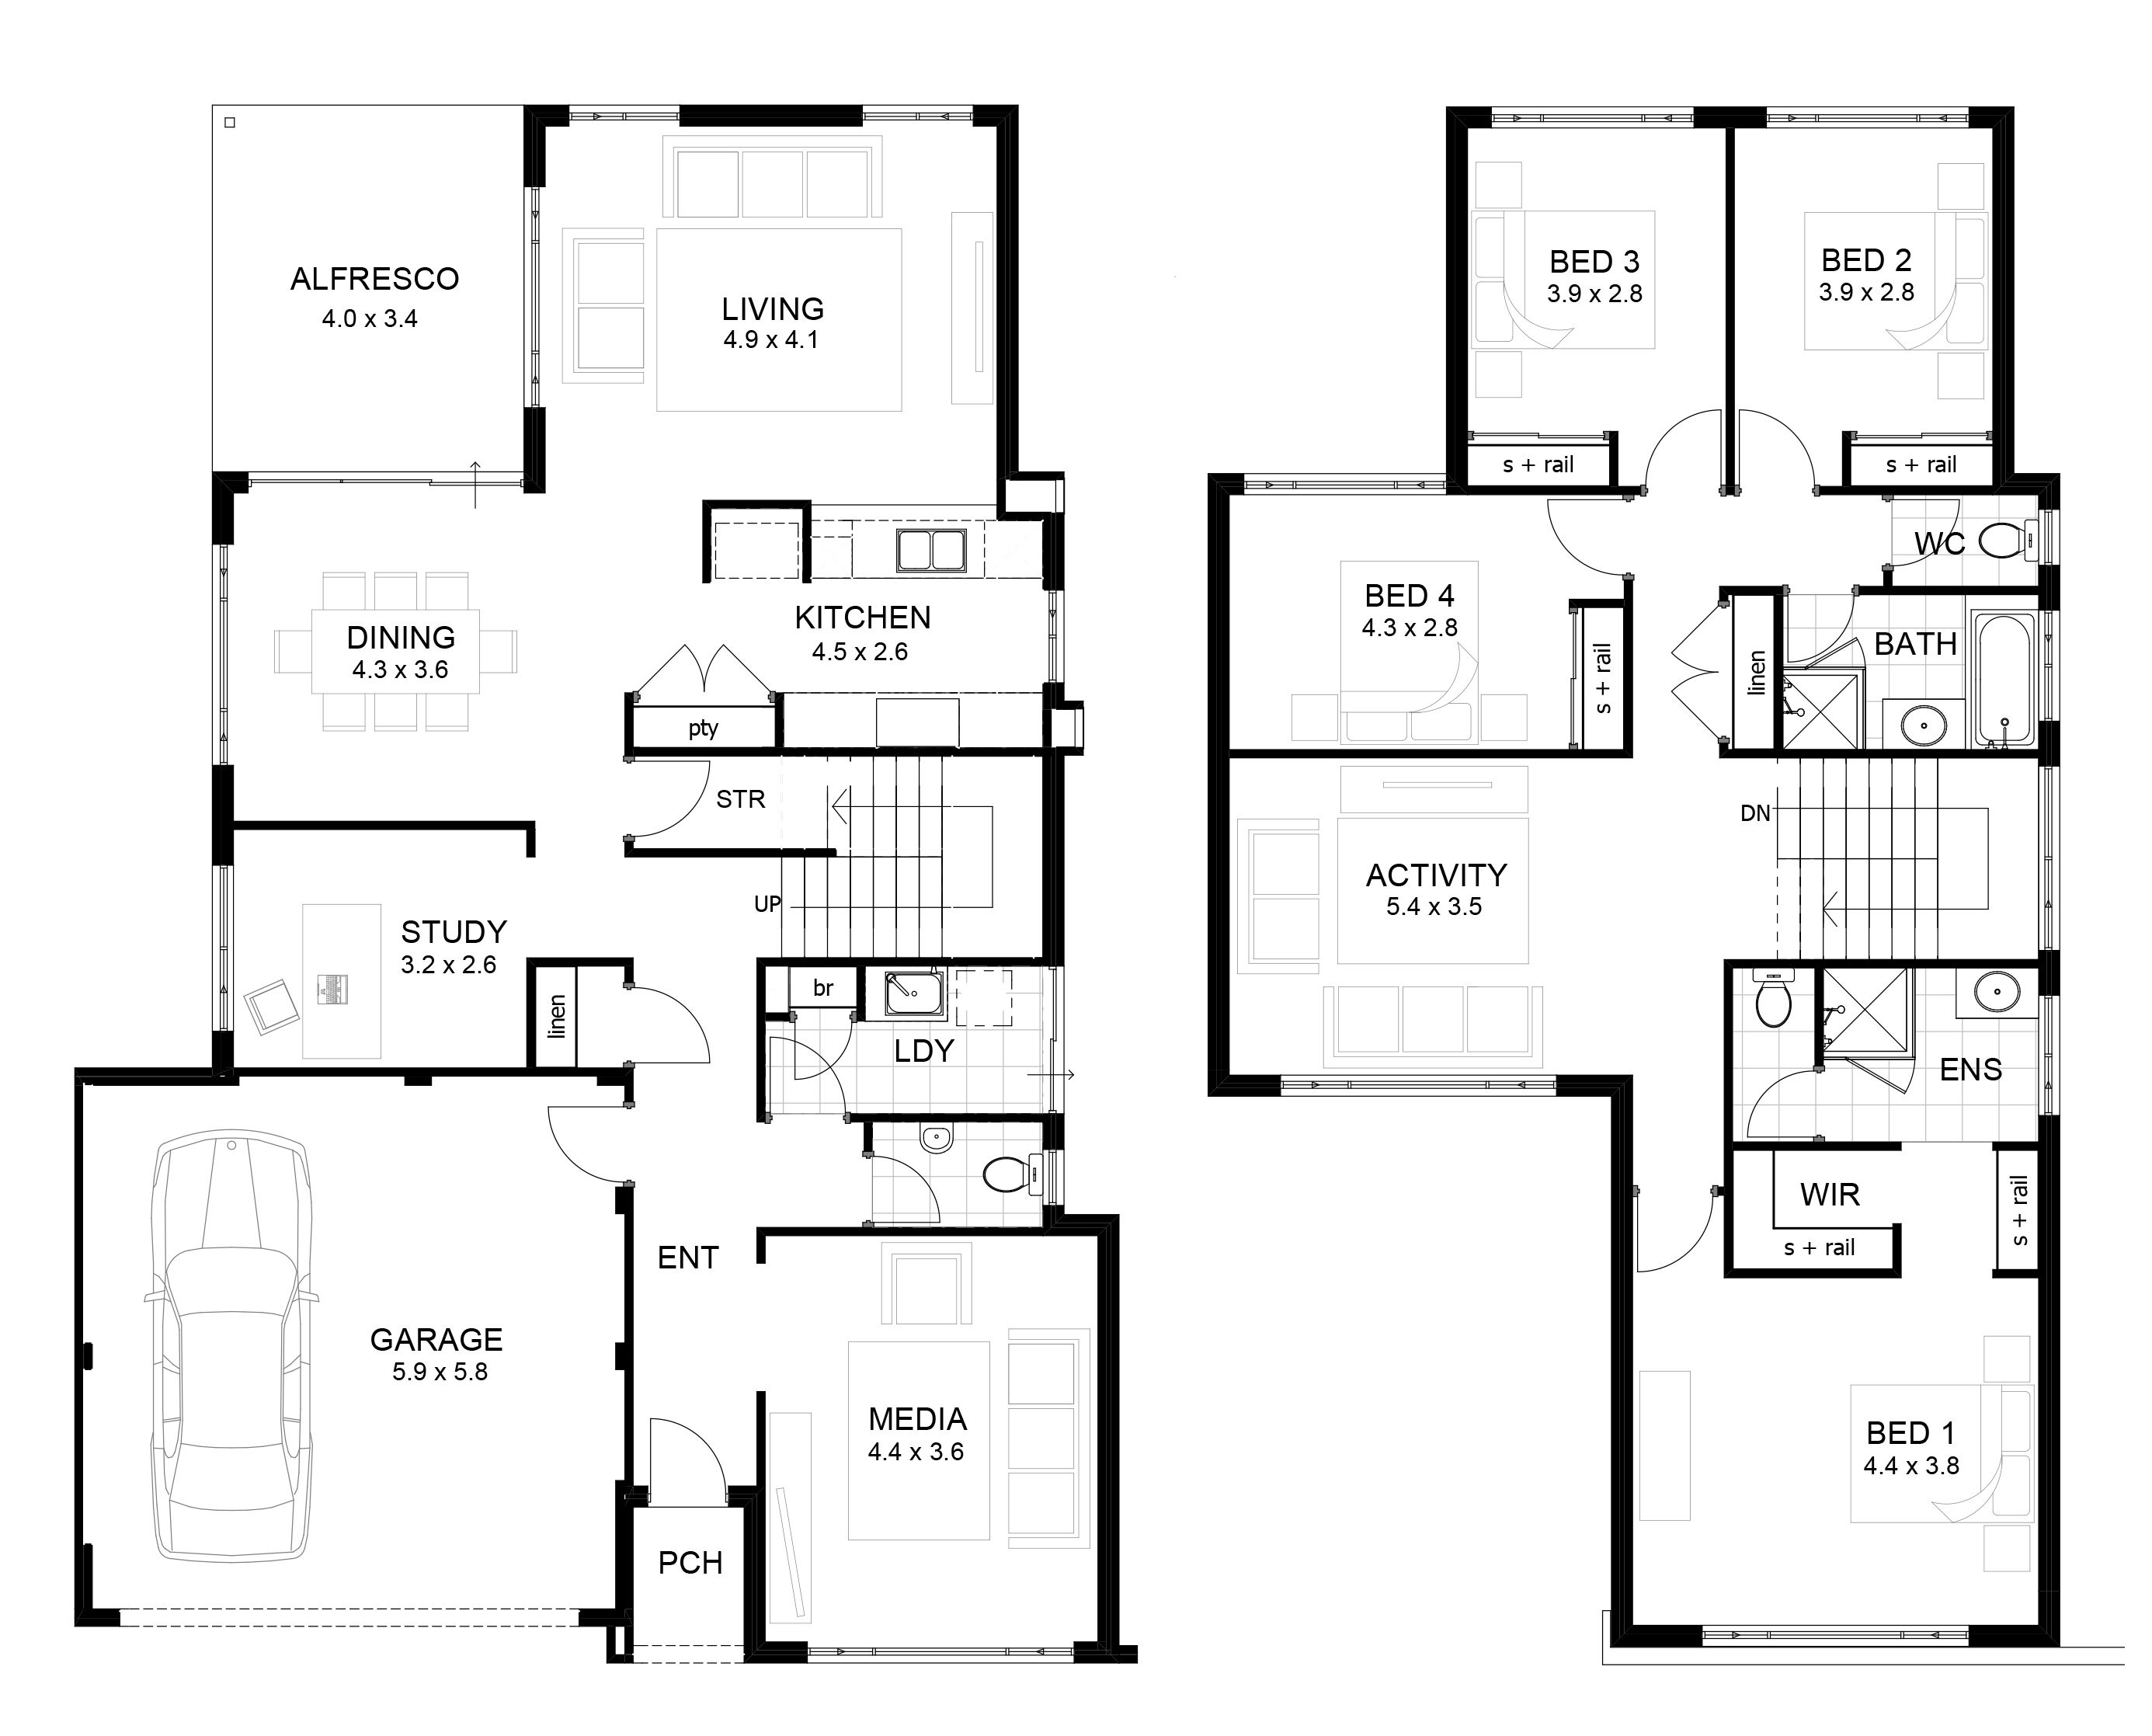 Home Design Modern 2 Story House Floor Plans Shabchic Style Regarding 2storyhouseplans Double Storey House Plans House Plans Australia Two Storey House Plans